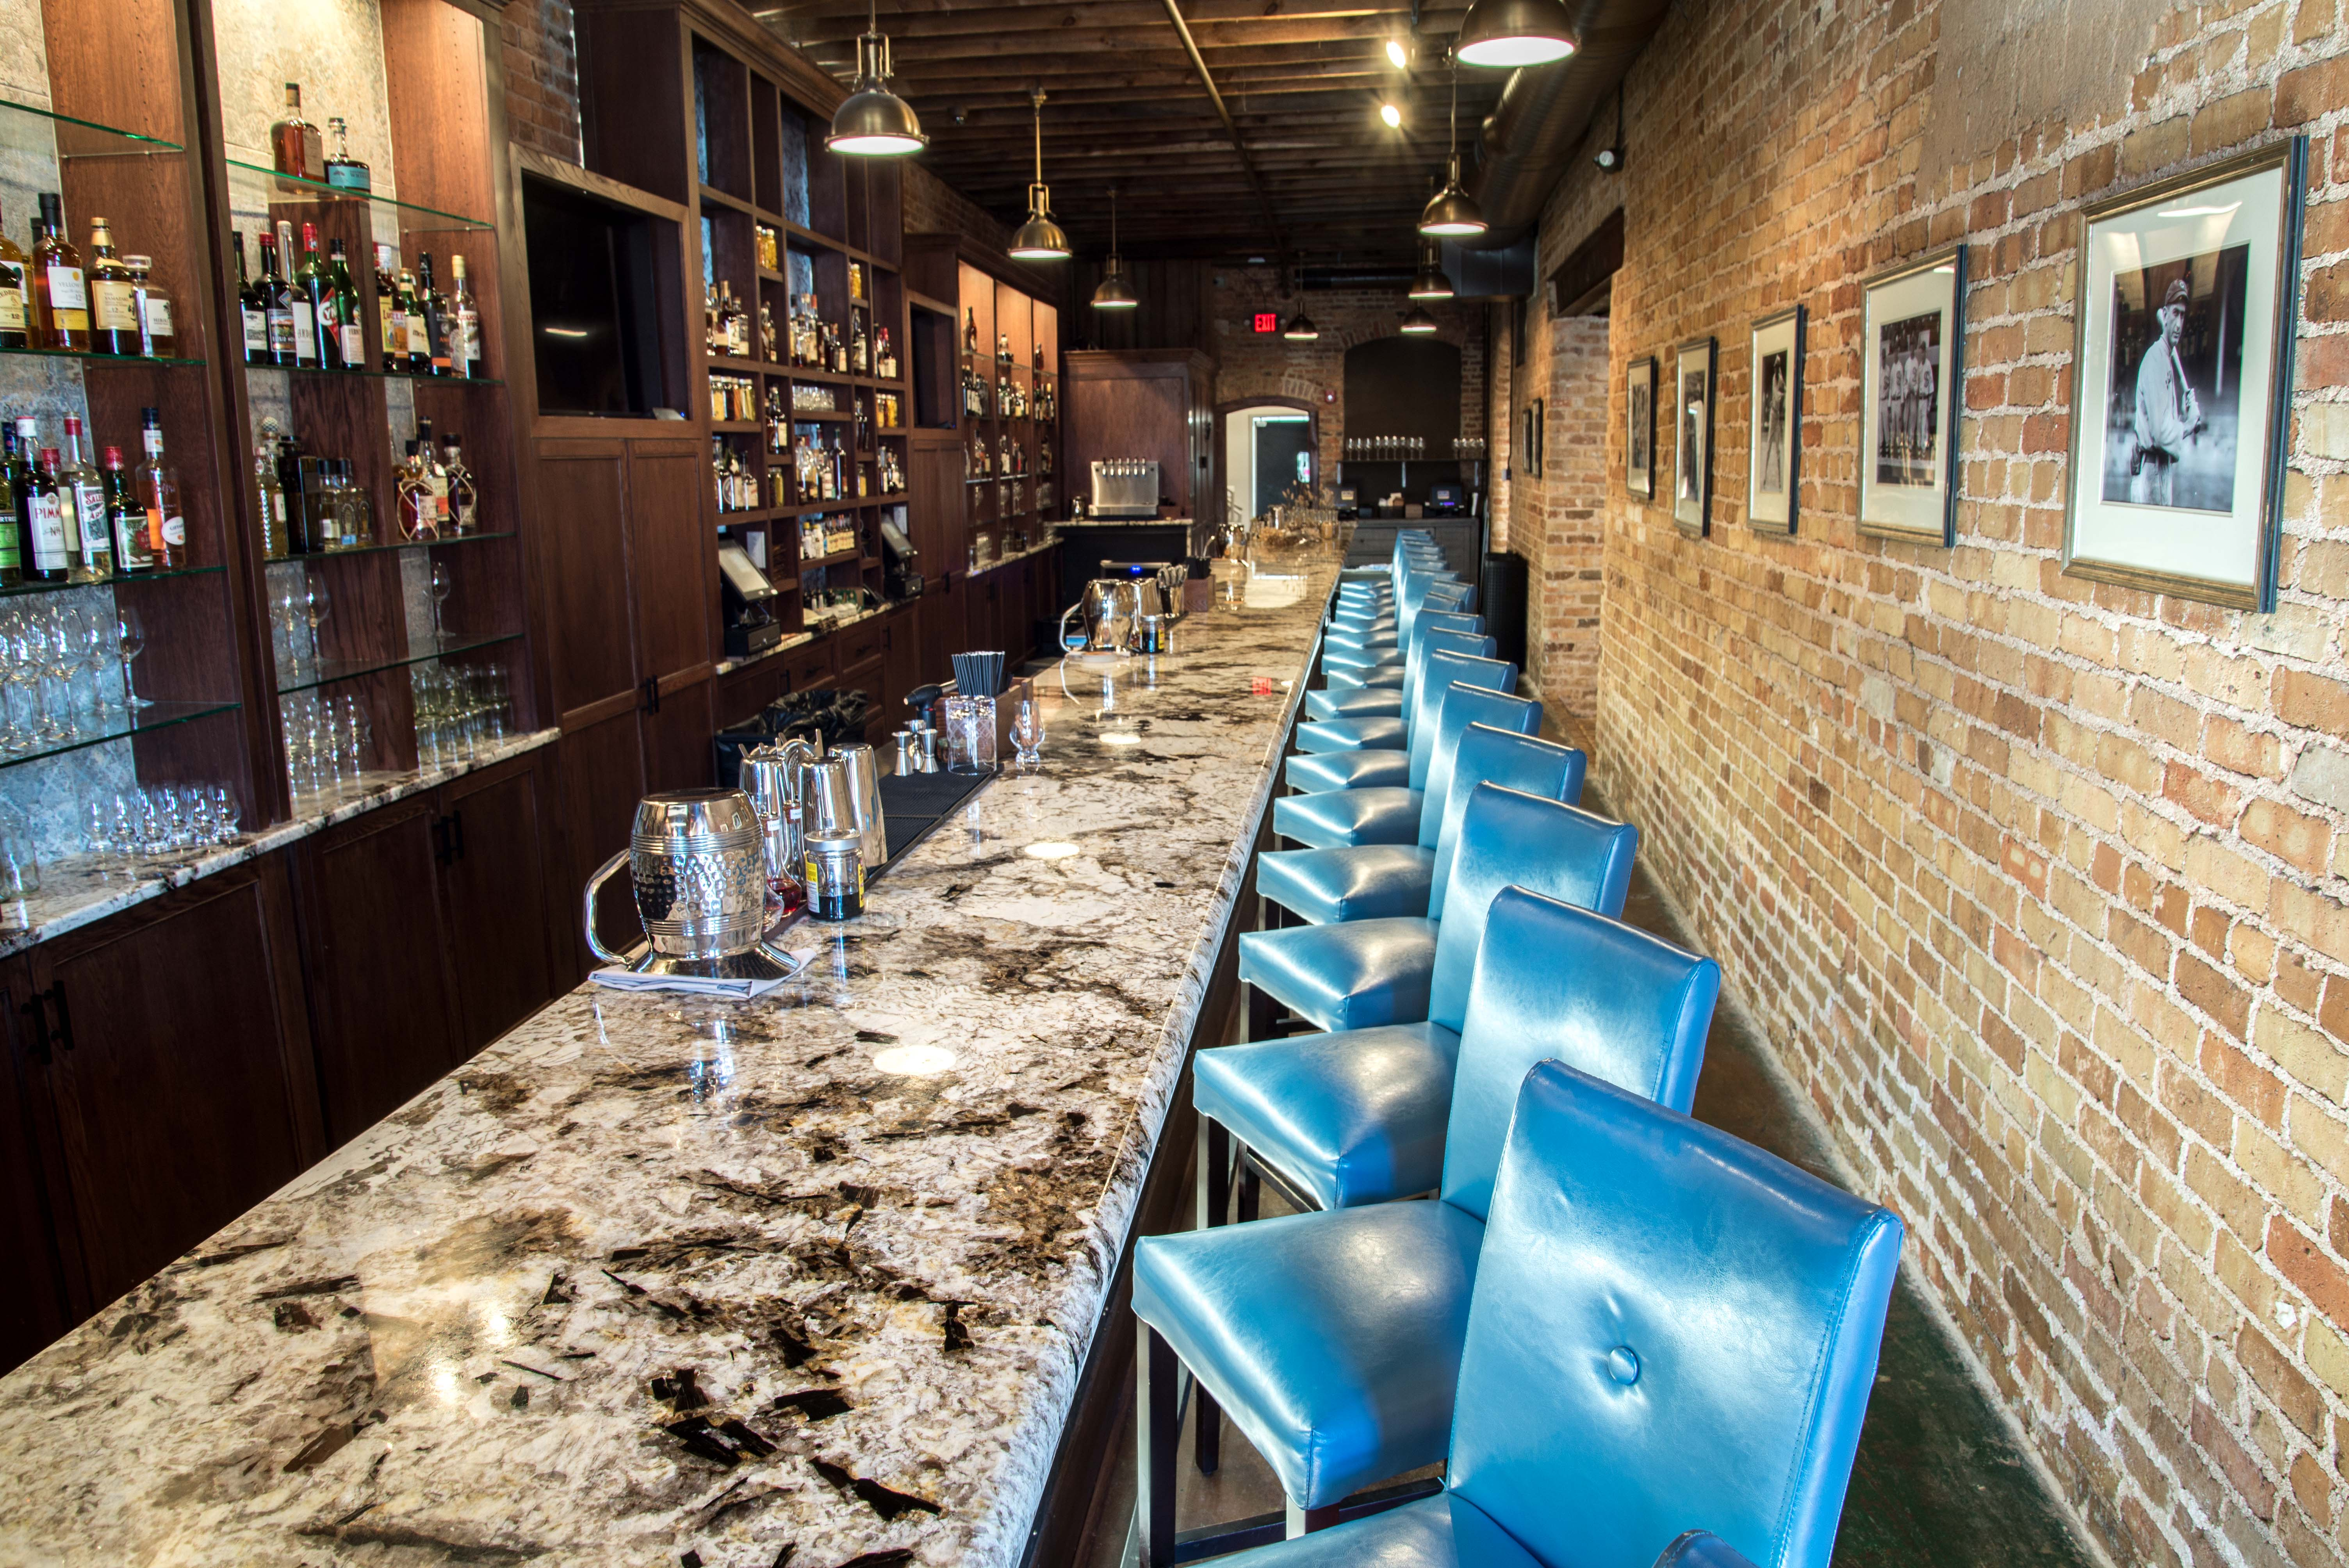 Granite Countertops used on the bar top at Husk a downtown Greenville, SC restaurant.  They chose a beautiful material called Copenhagen granite.